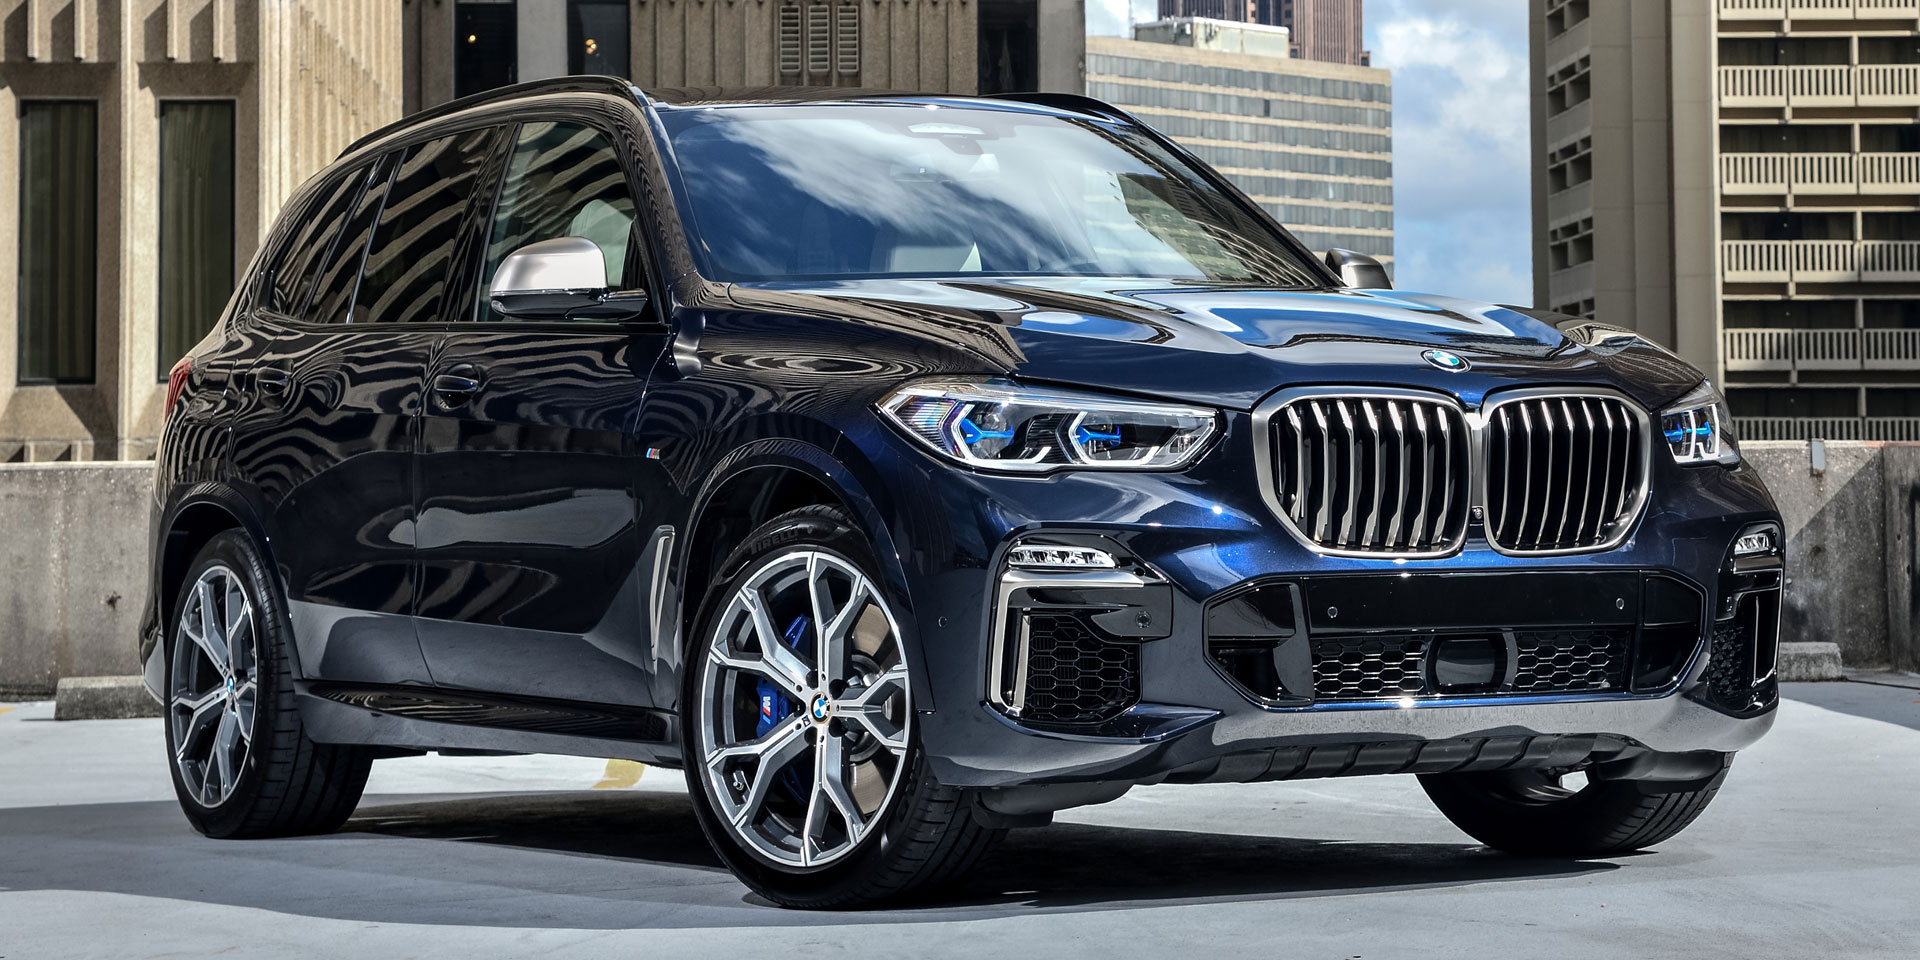 2019 Bmw X5 Vehicles On Display Chicago Auto Show